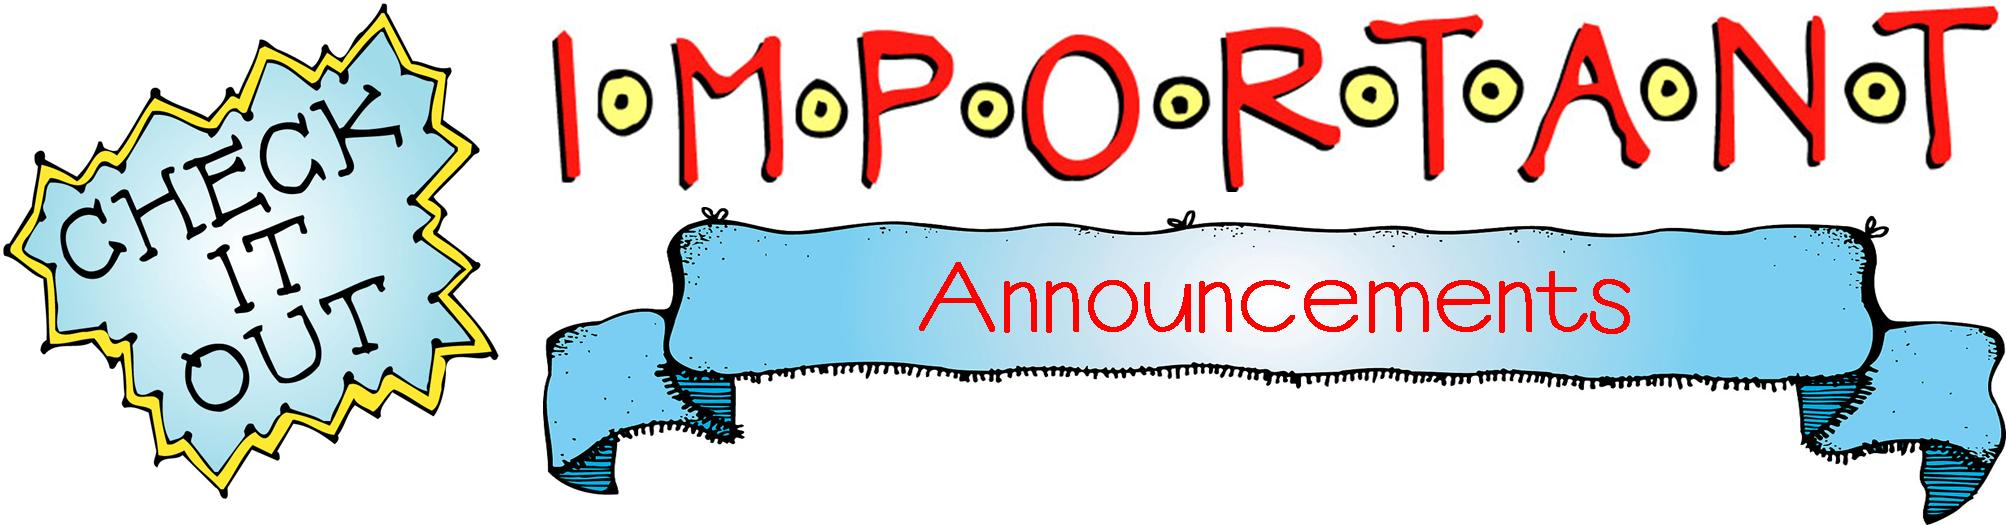 Announcement Clip Art